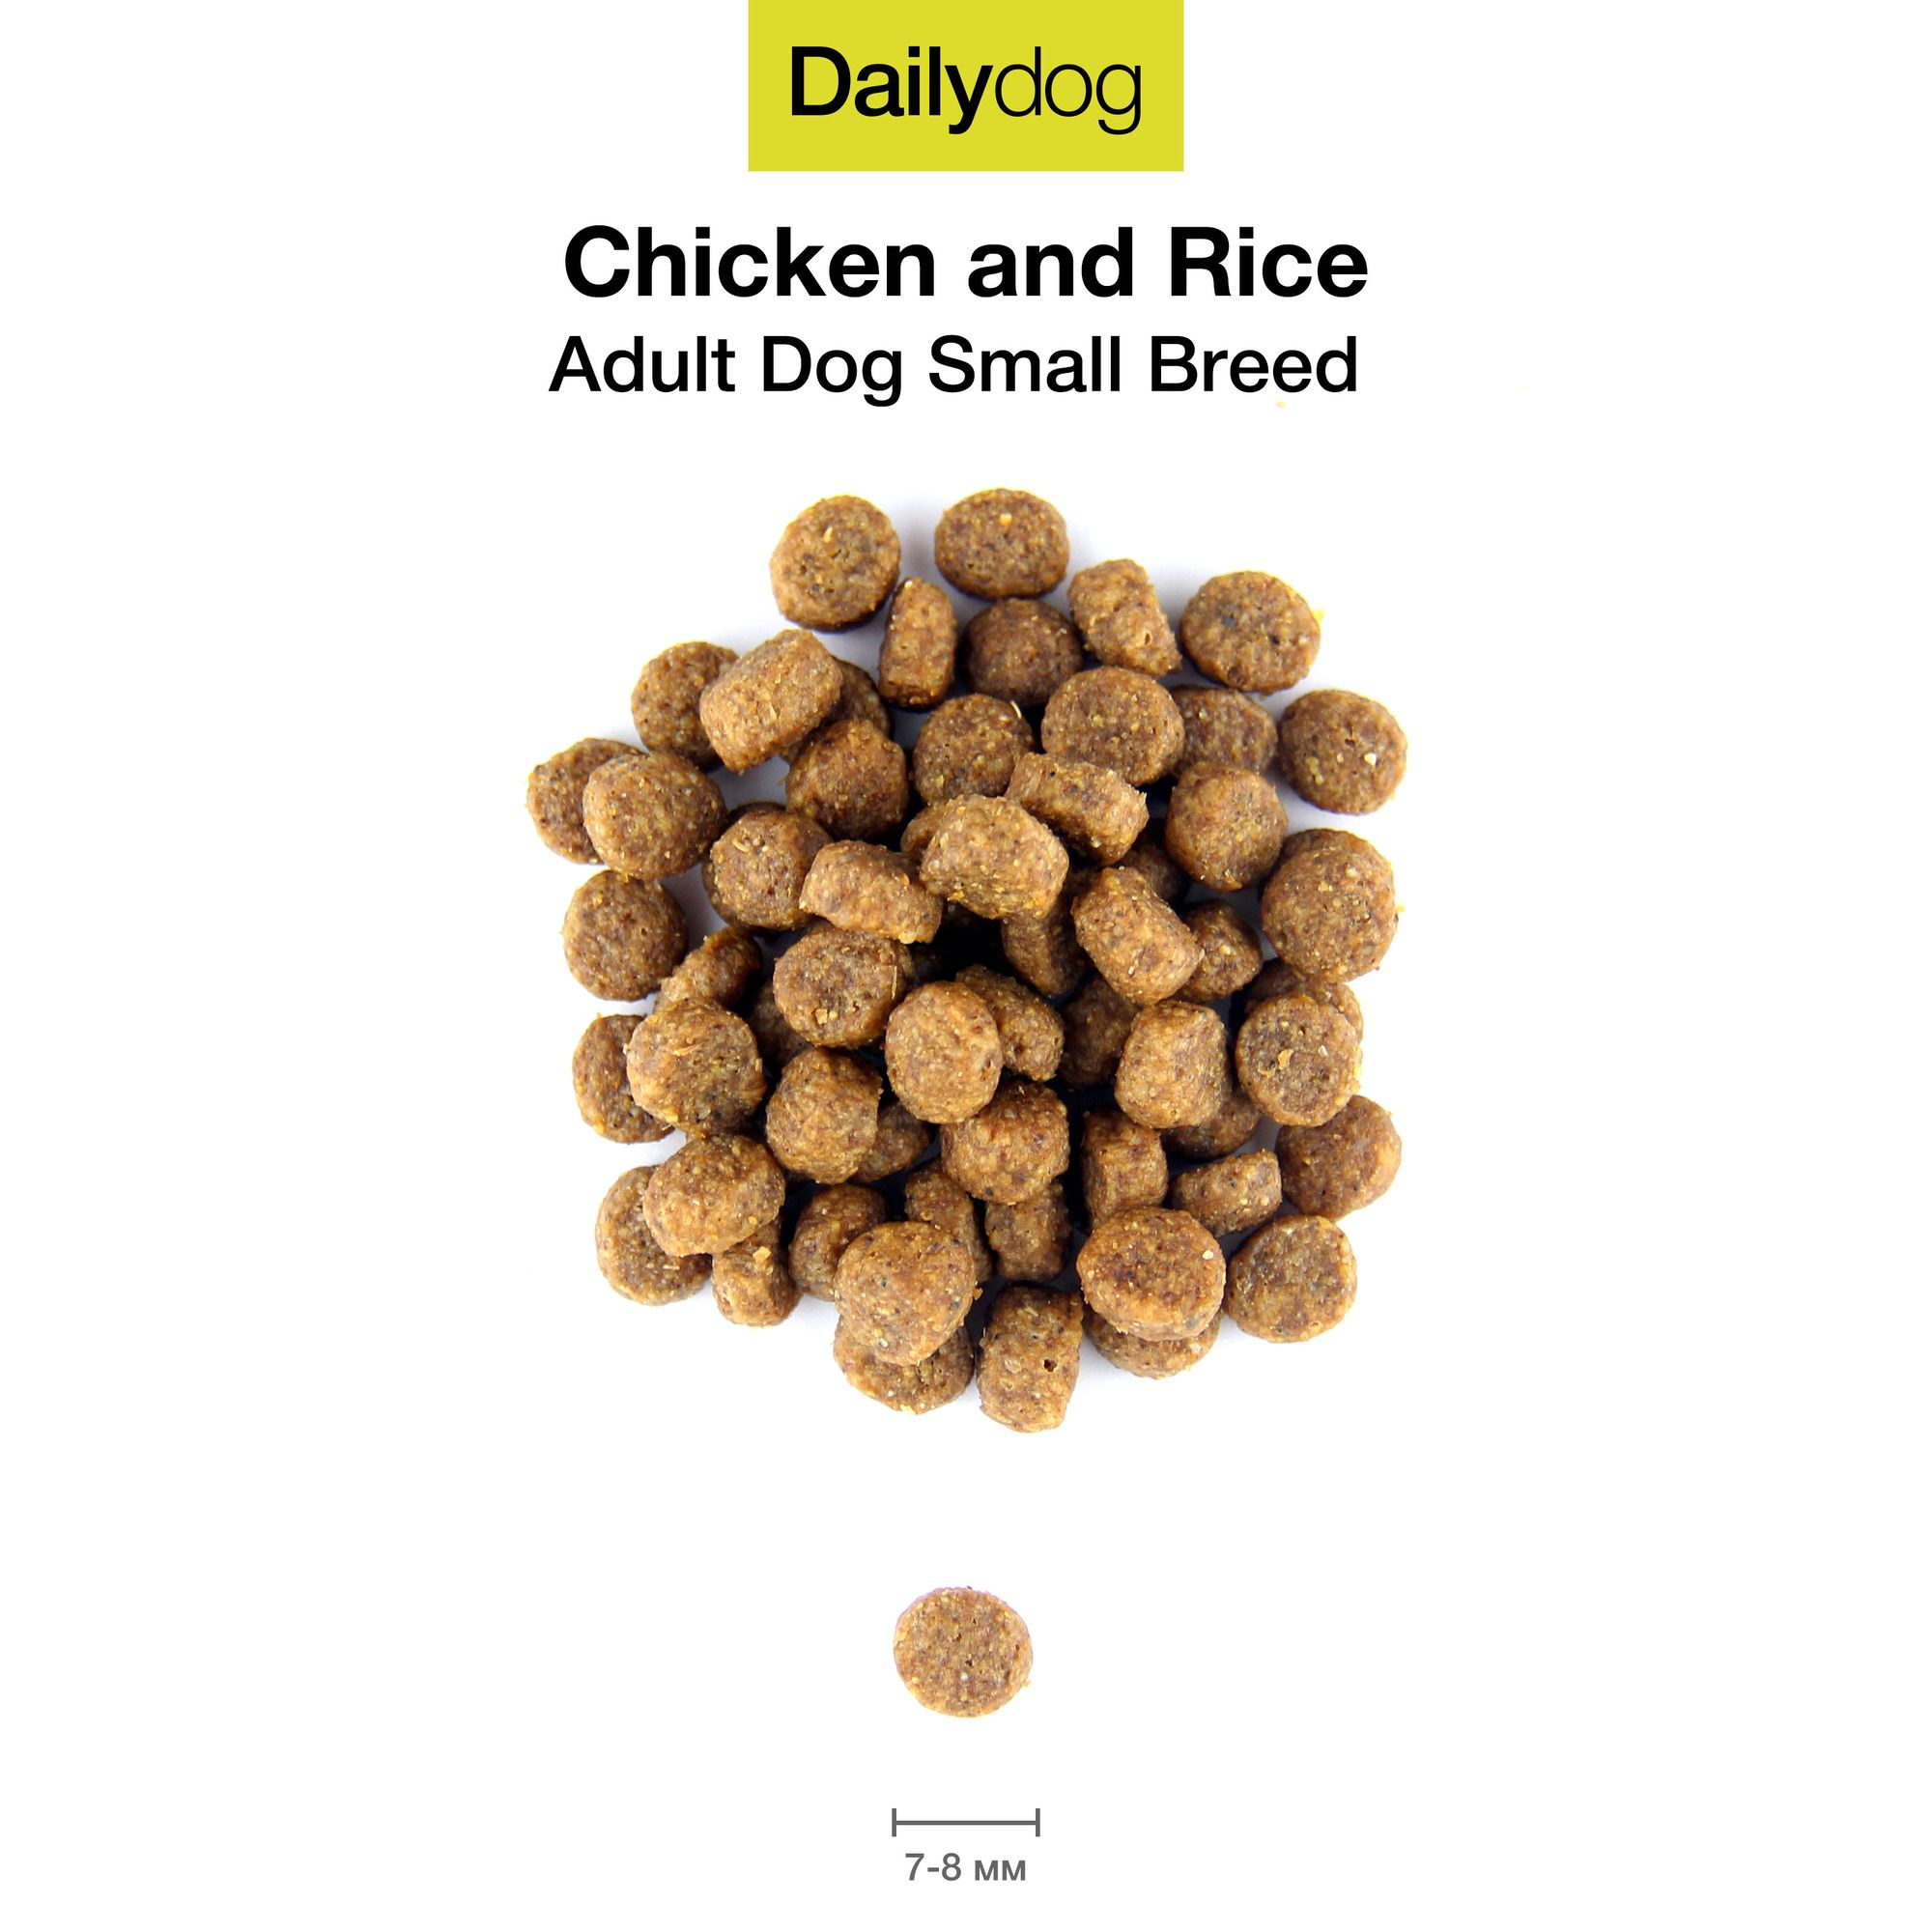 Dailydog Adult Small Breed Chicken and Rice. Фото №2